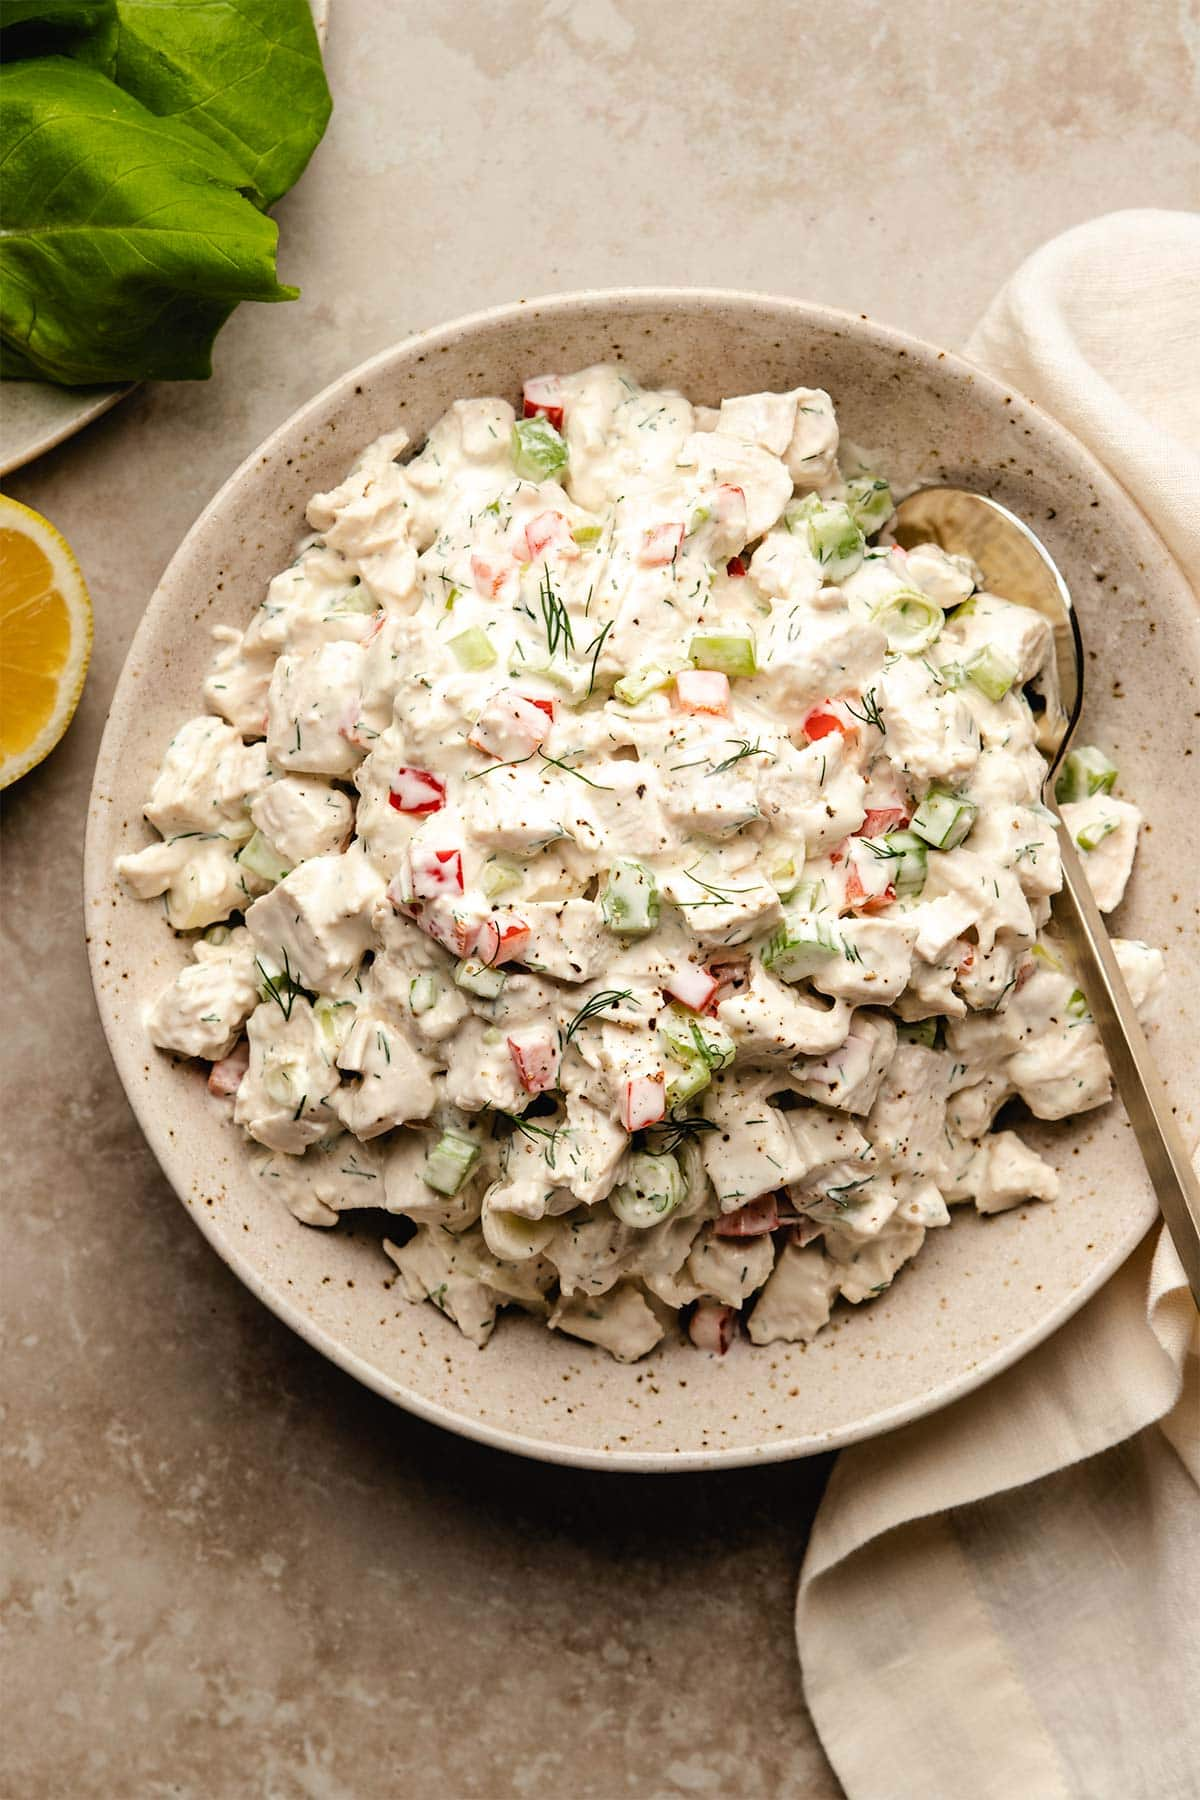 Chicken salad in a beige speckled bowl with a gold spoon tucked in, viewed from overhead.